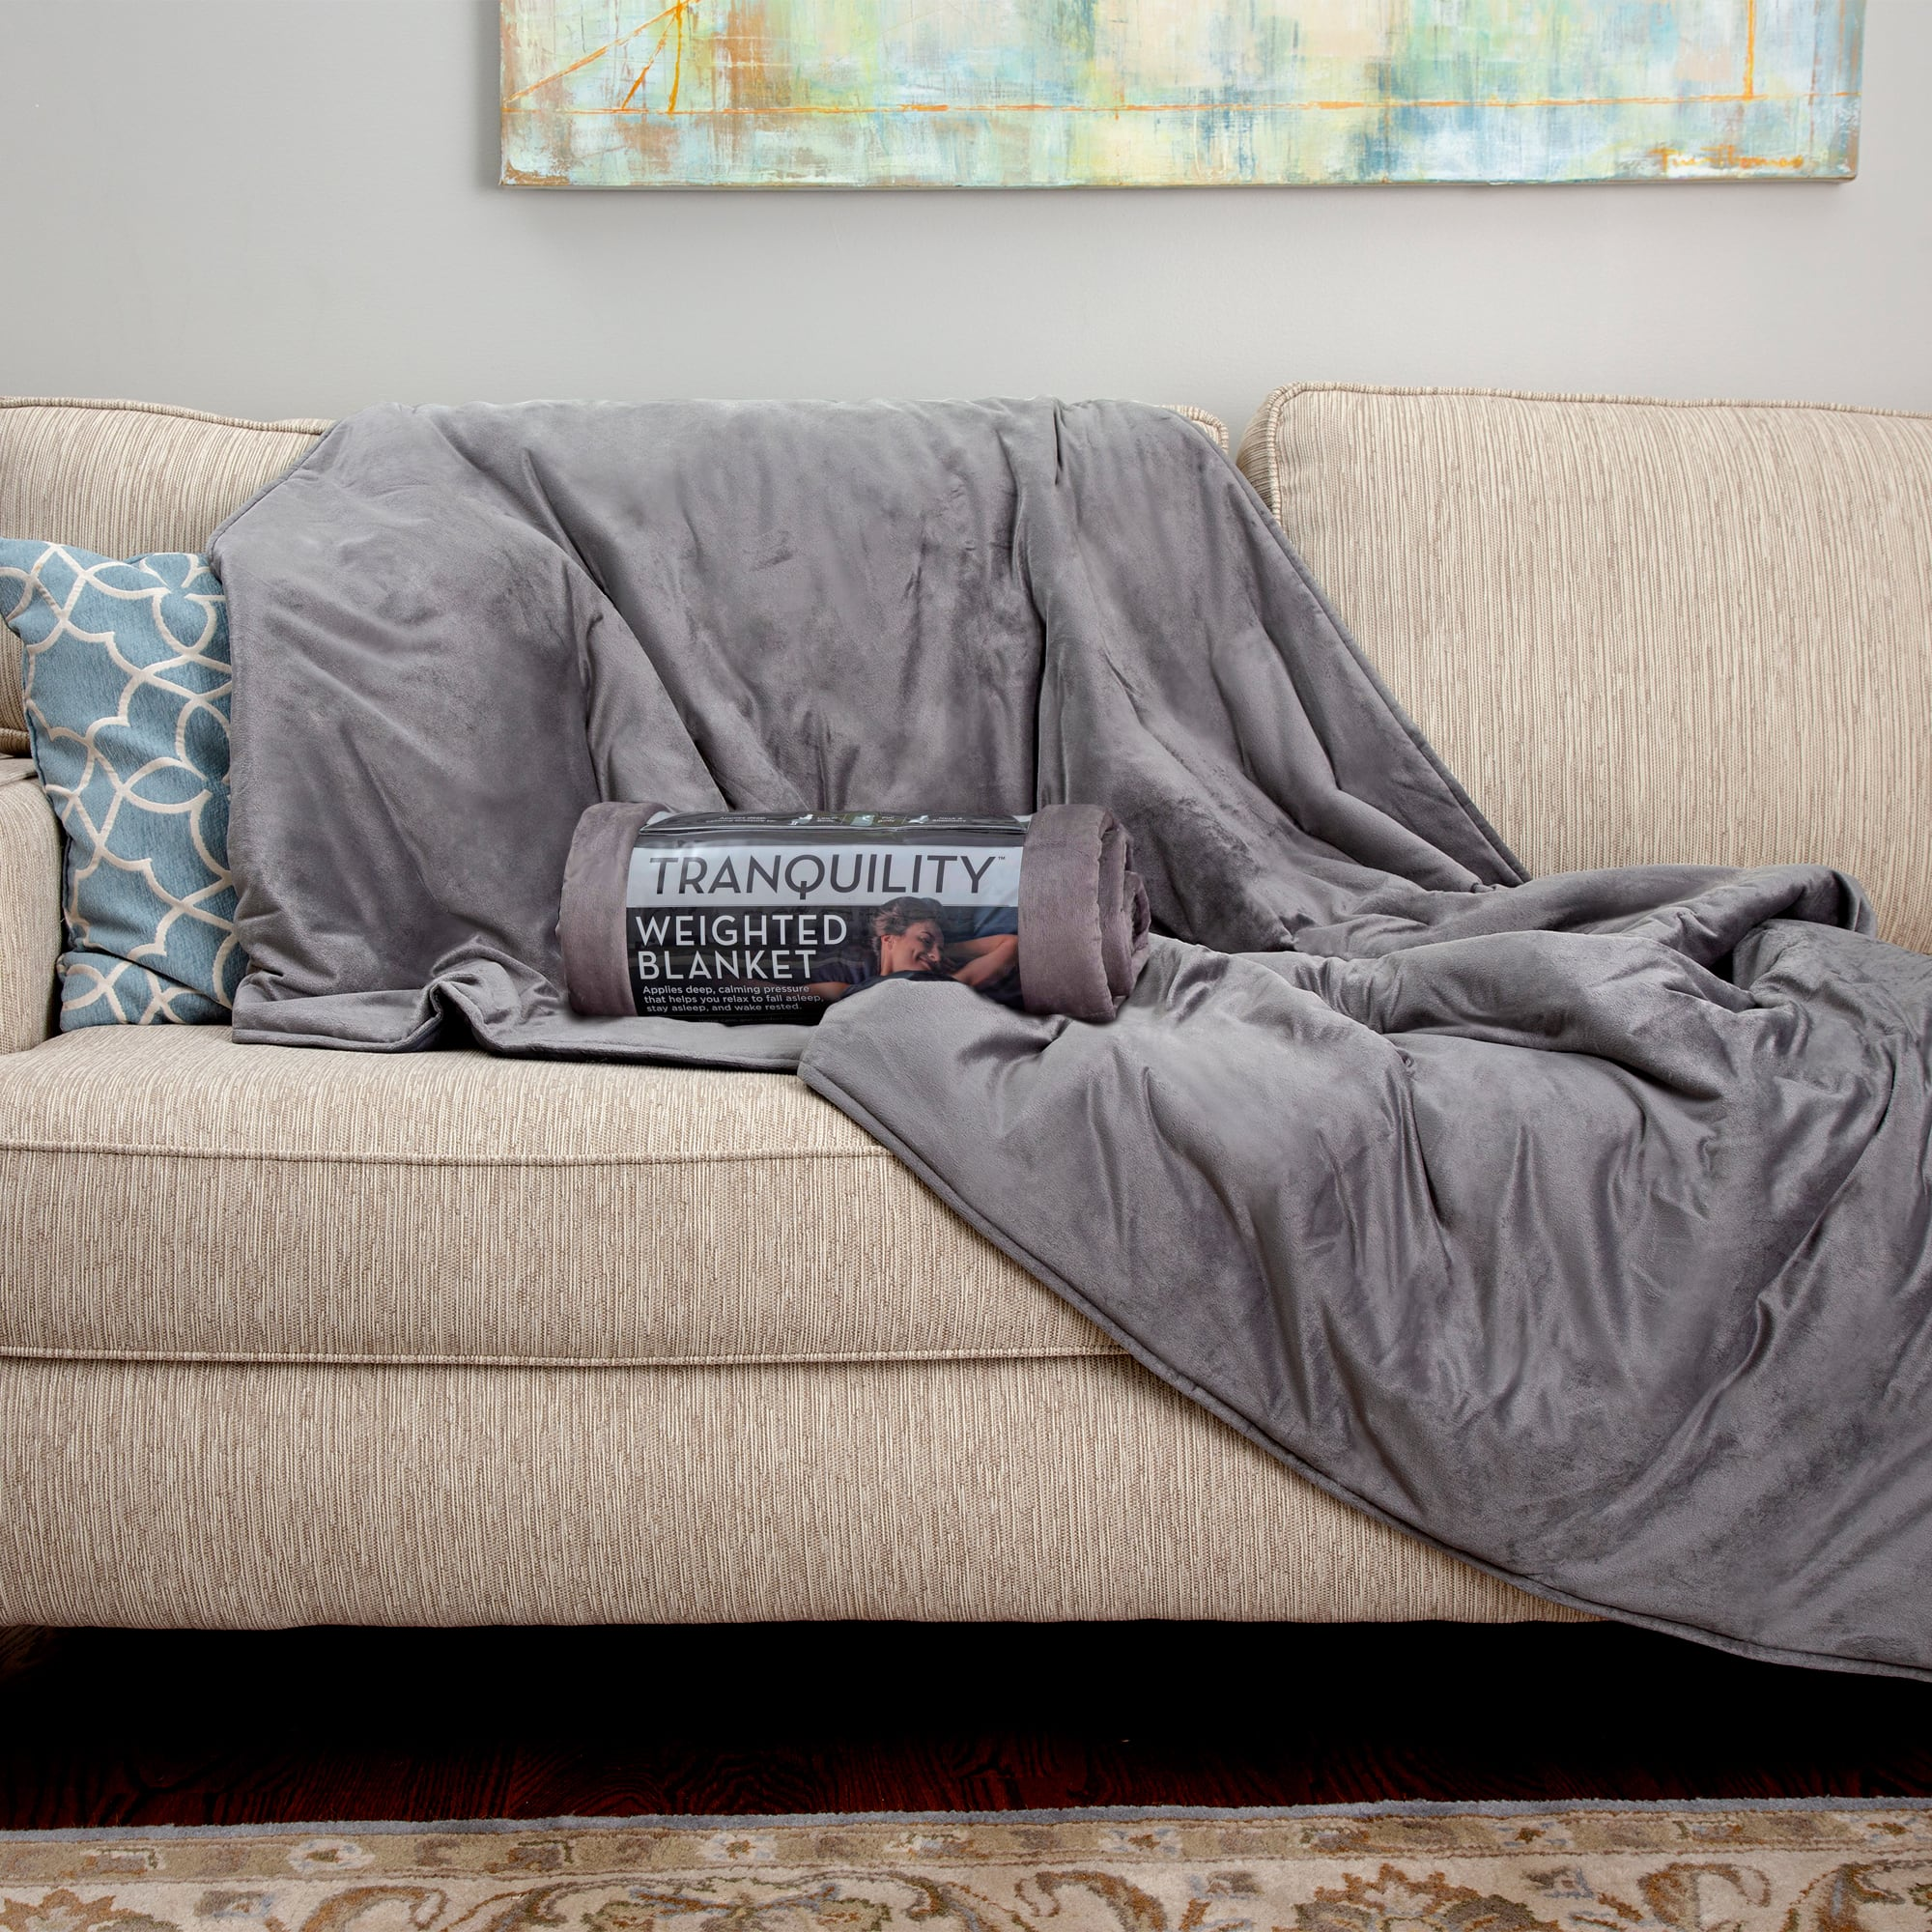 Tranquility Weighted Blanket, 12lb With Cover $20 @ Walmart.com YMMV